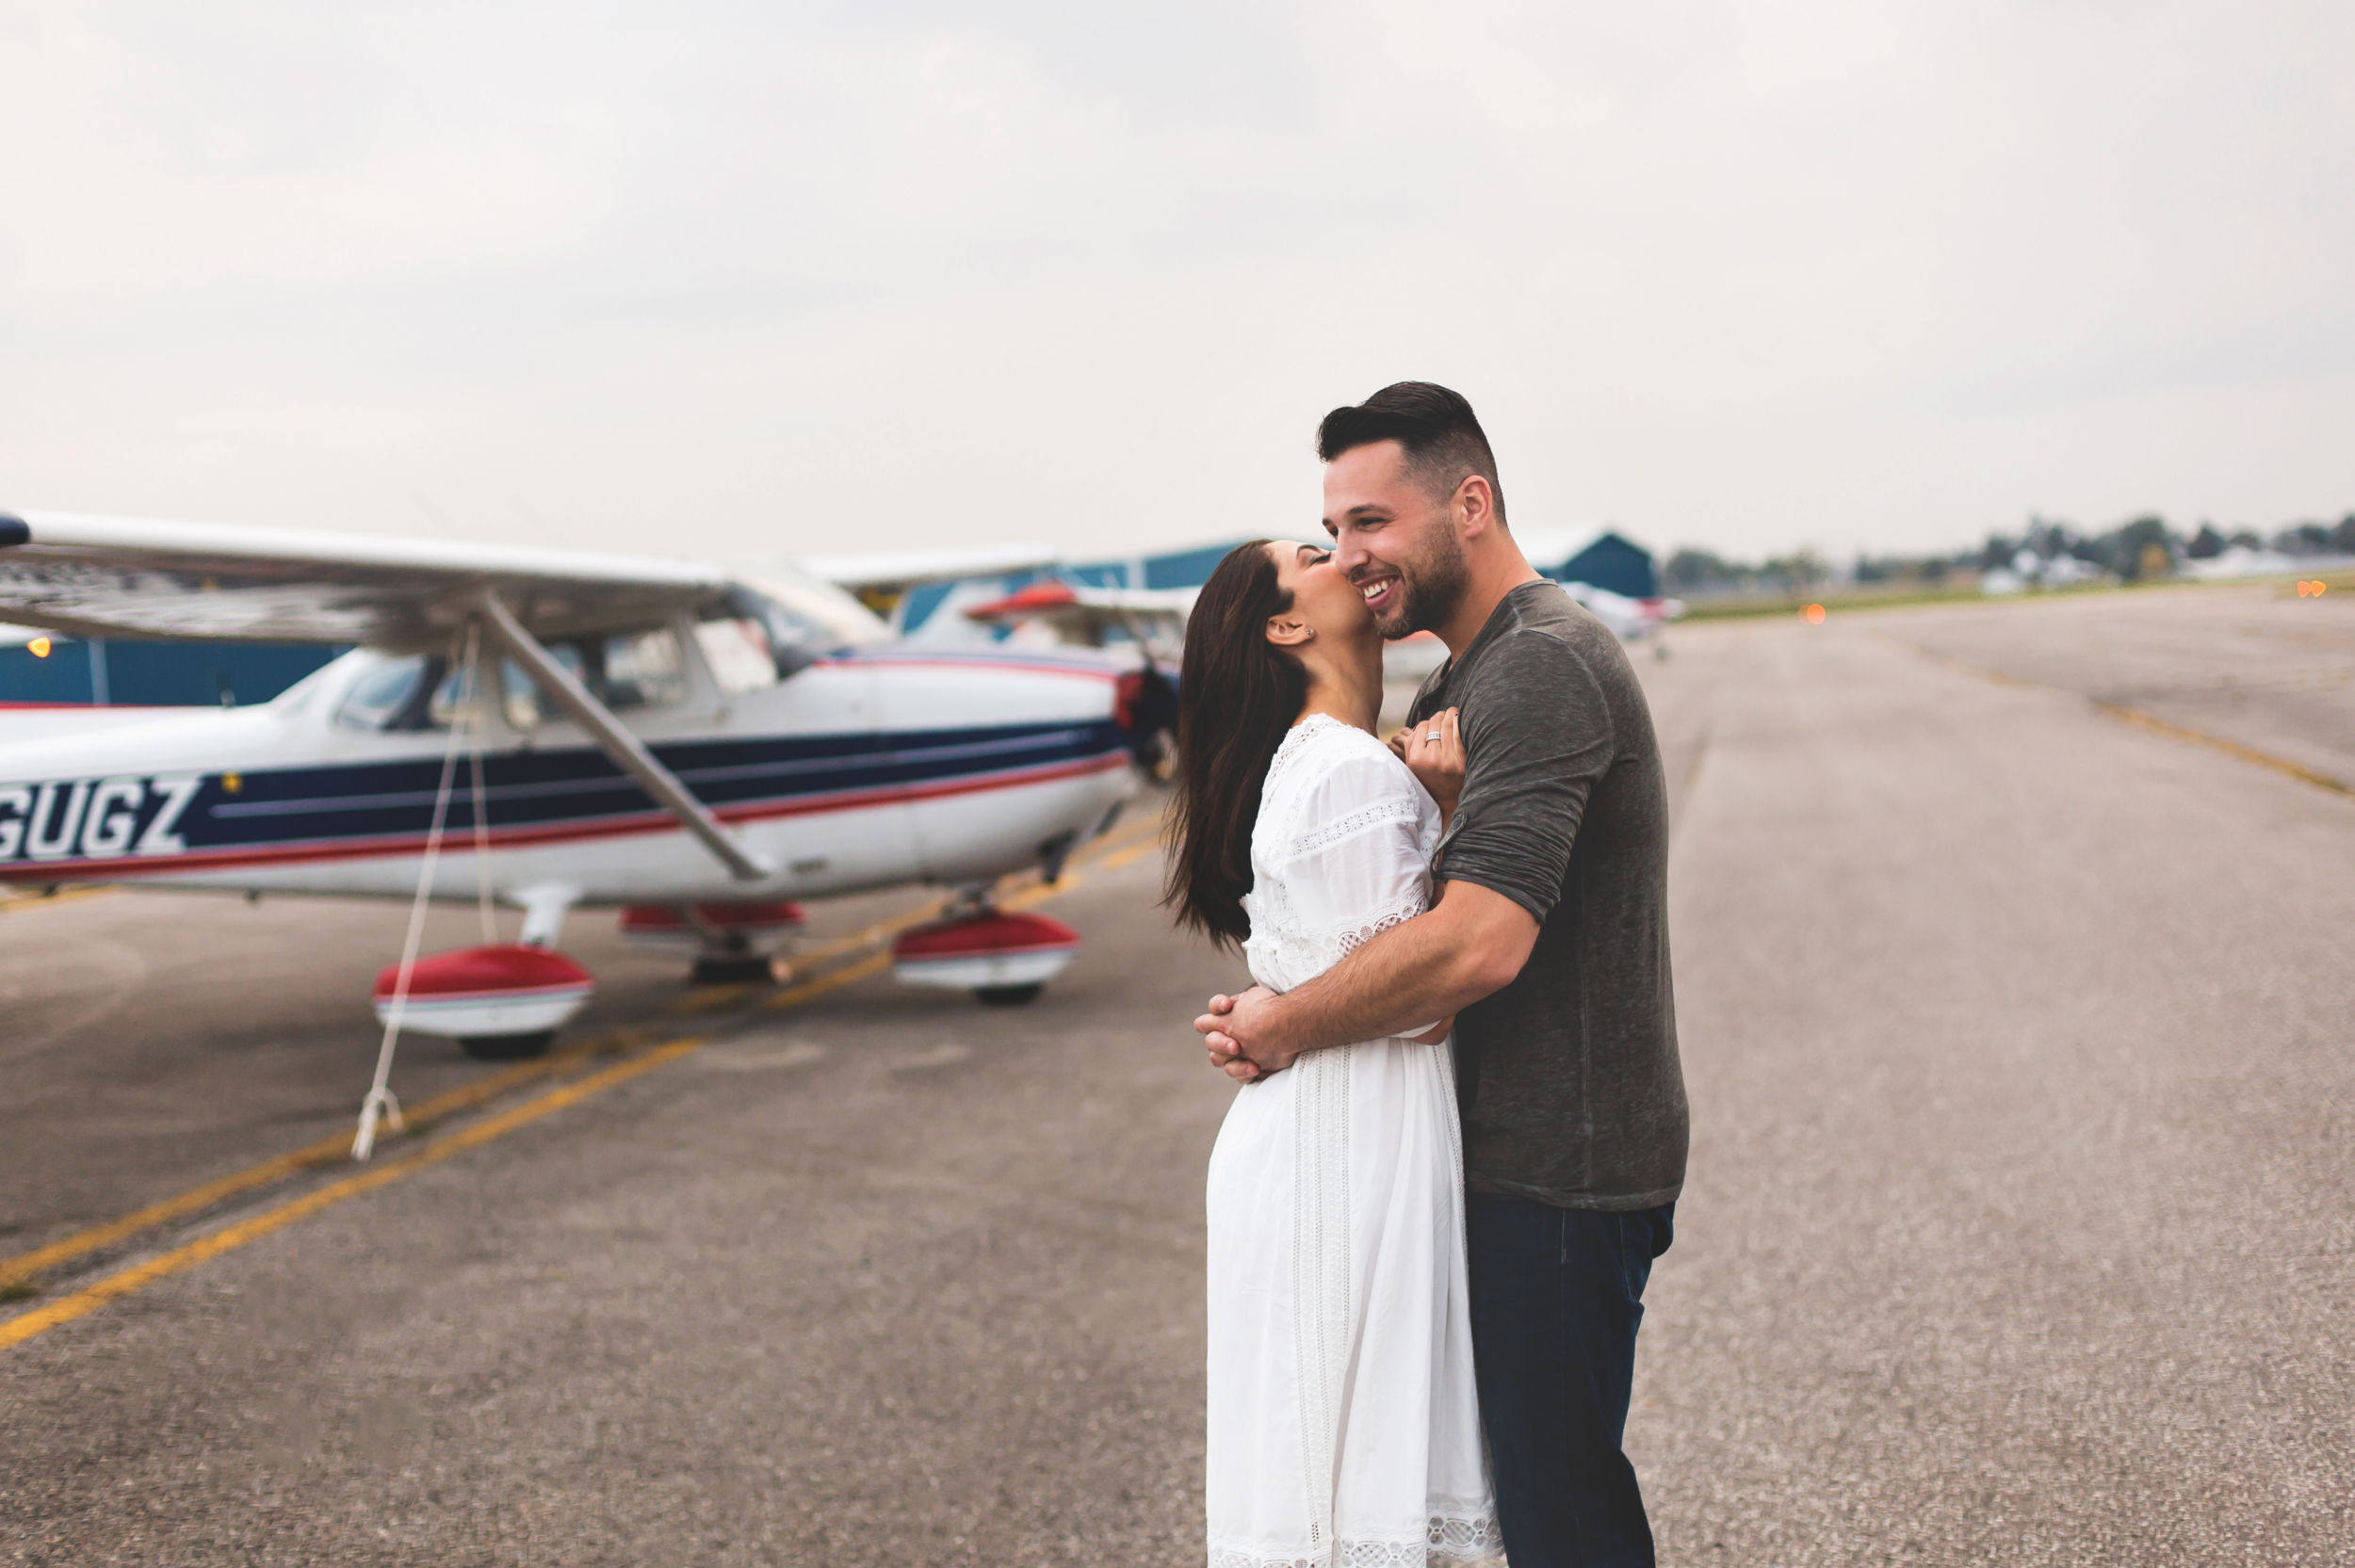 Engagement-Session-Hamilton-Burlington-Oakville-Toronto-Niagara-Wedding-Photographer-Engaged-Photography-Brantford-Airport-HamOnt-Engaged-Moments-by-Lauren-Photo-Image-28.png